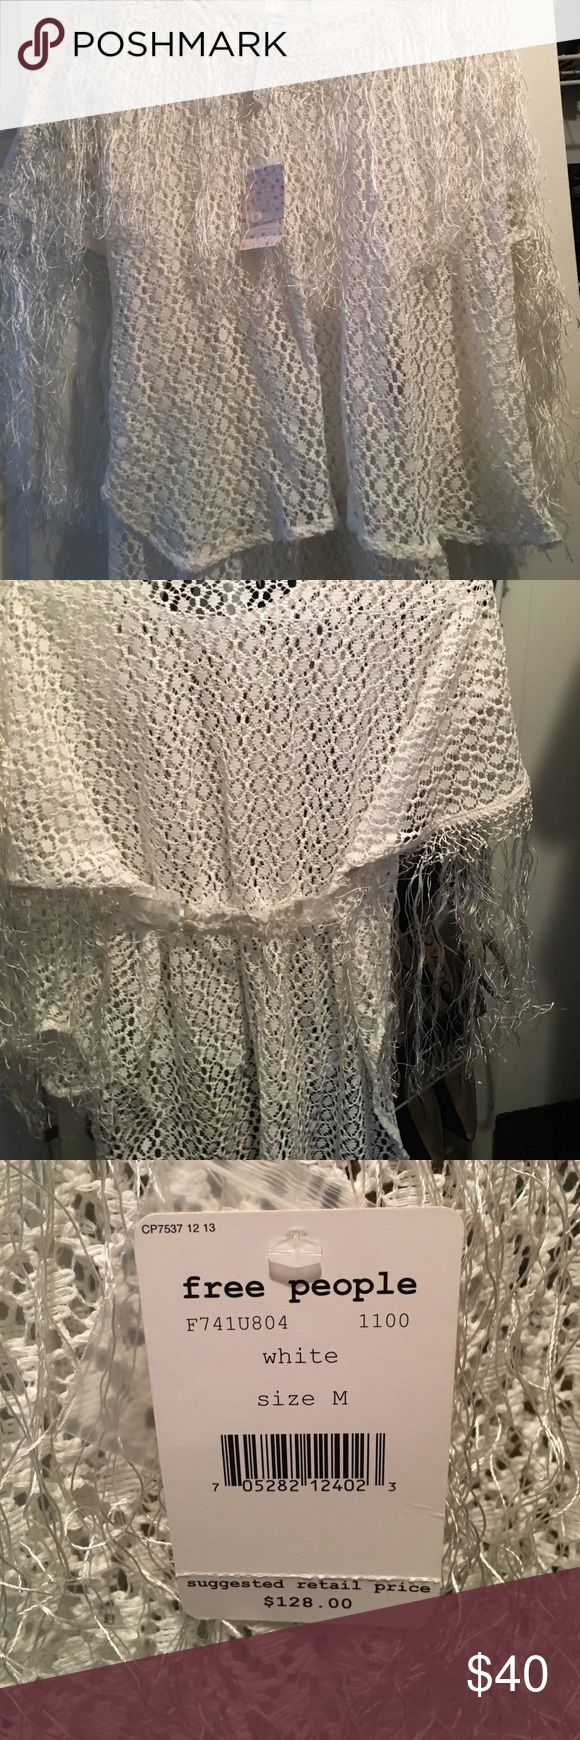 Free People short sleeve dress shirt Brand new with tags! Fun for a country concert with all of the frayed string! New Romantics with lace button detail in the back. So fun for summer. Priced super fair! Let's bundle! Free People Tops Tees - Short Sleeve